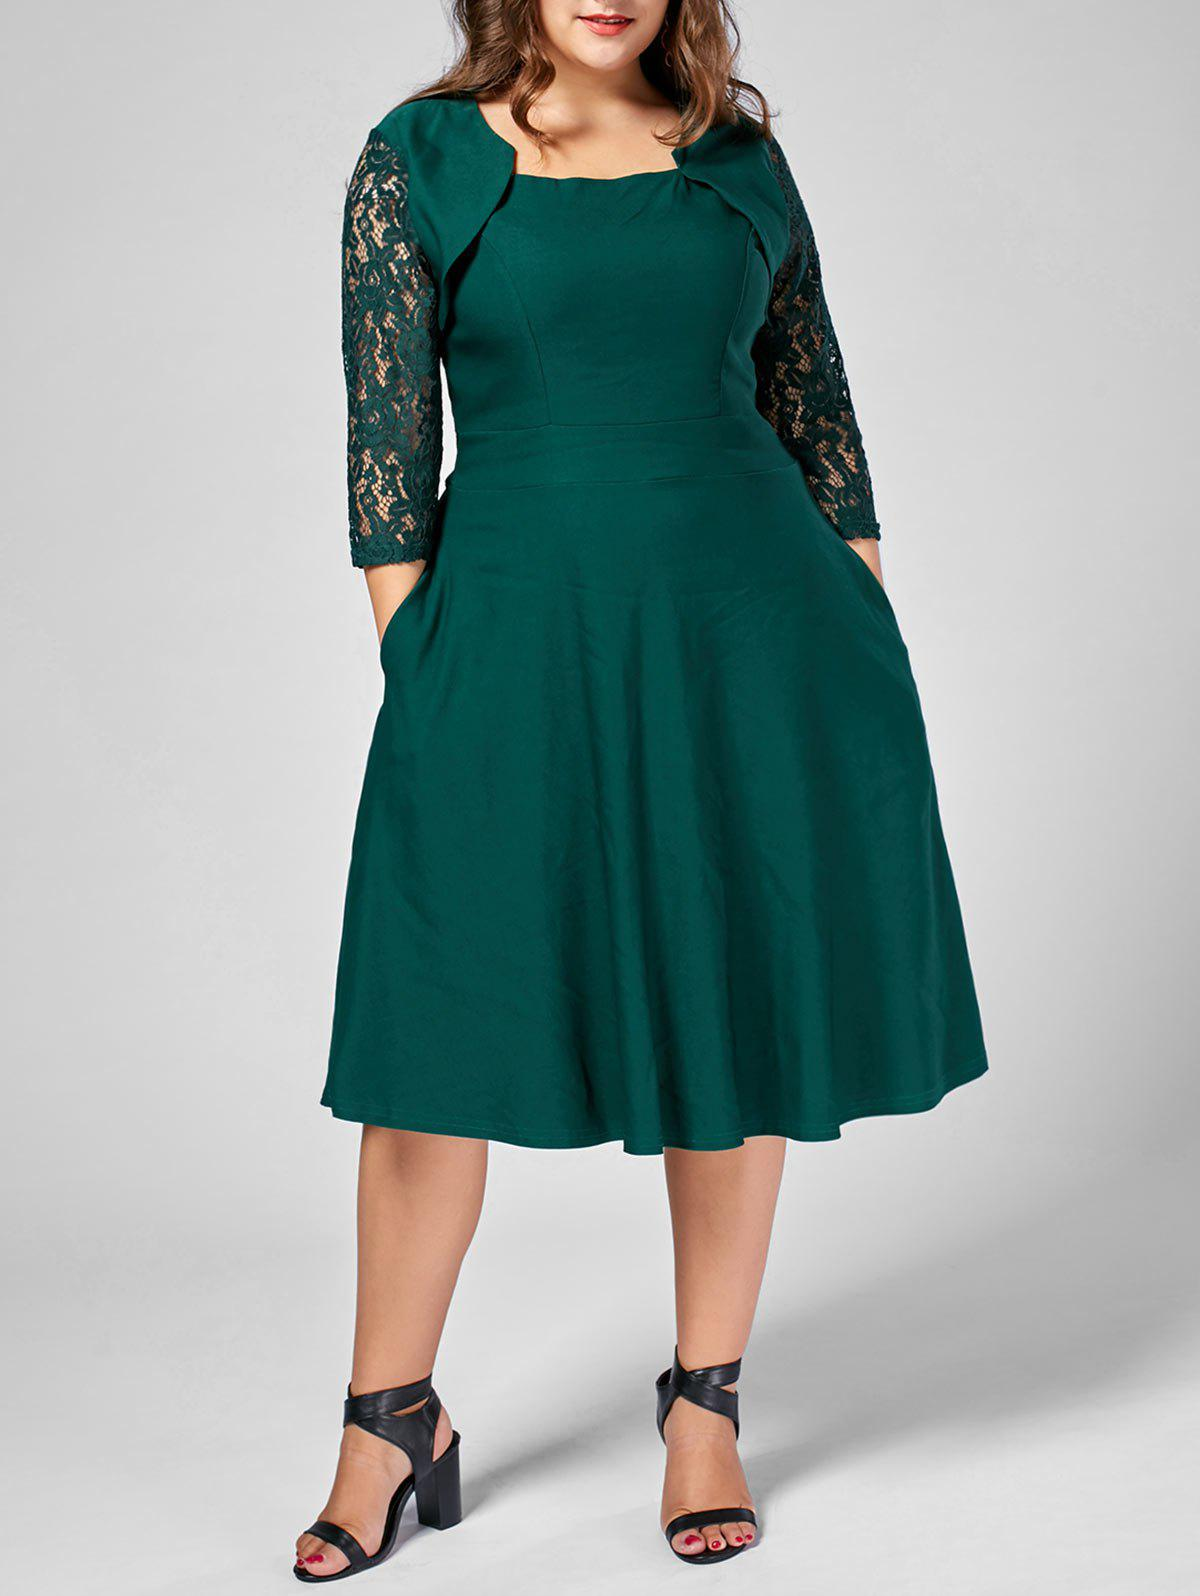 Plus Size Lace Trim A Line Midi DressWOMEN<br><br>Size: 5XL; Color: GREEN; Style: Brief; Material: Polyester; Silhouette: A-Line; Dresses Length: Mid-Calf; Neckline: Square Collar; Sleeve Length: 3/4 Length Sleeves; Pattern Type: Solid Color; With Belt: No; Season: Fall,Summer; Weight: 0.4700kg; Package Contents: 1 x Dress;